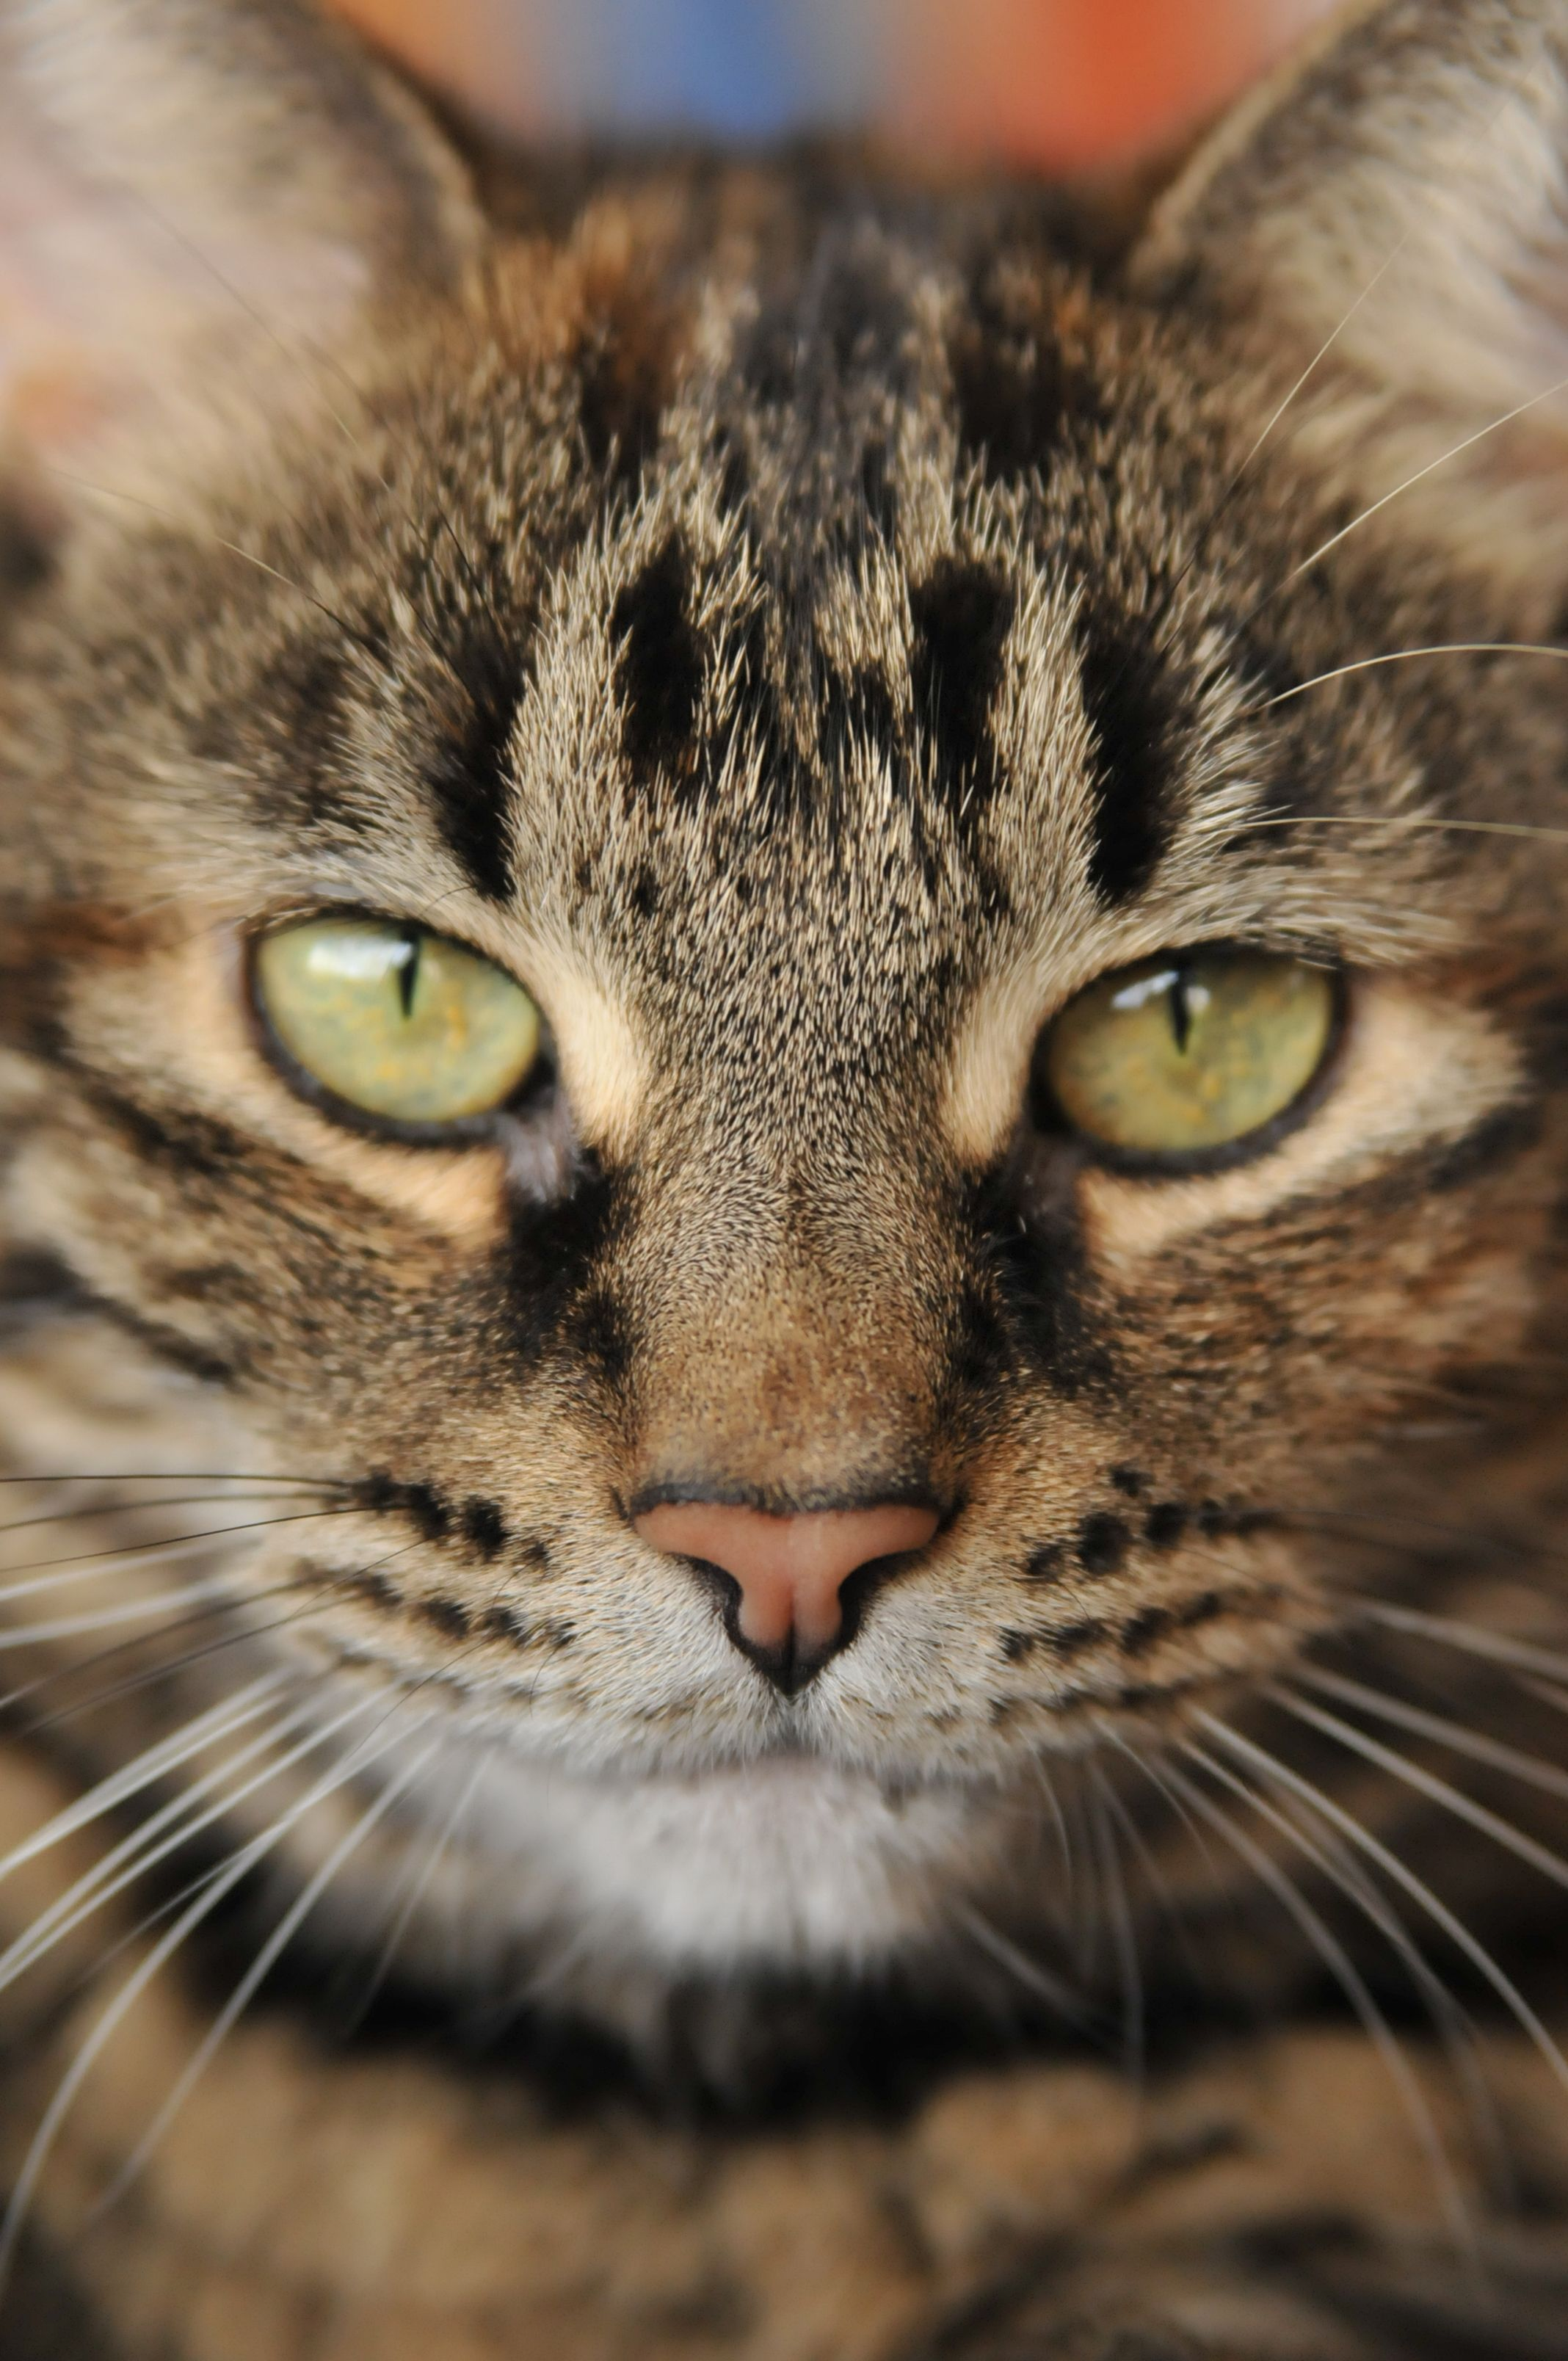 The Bengal is a hybrid breed of domestic cat. Abyssinian